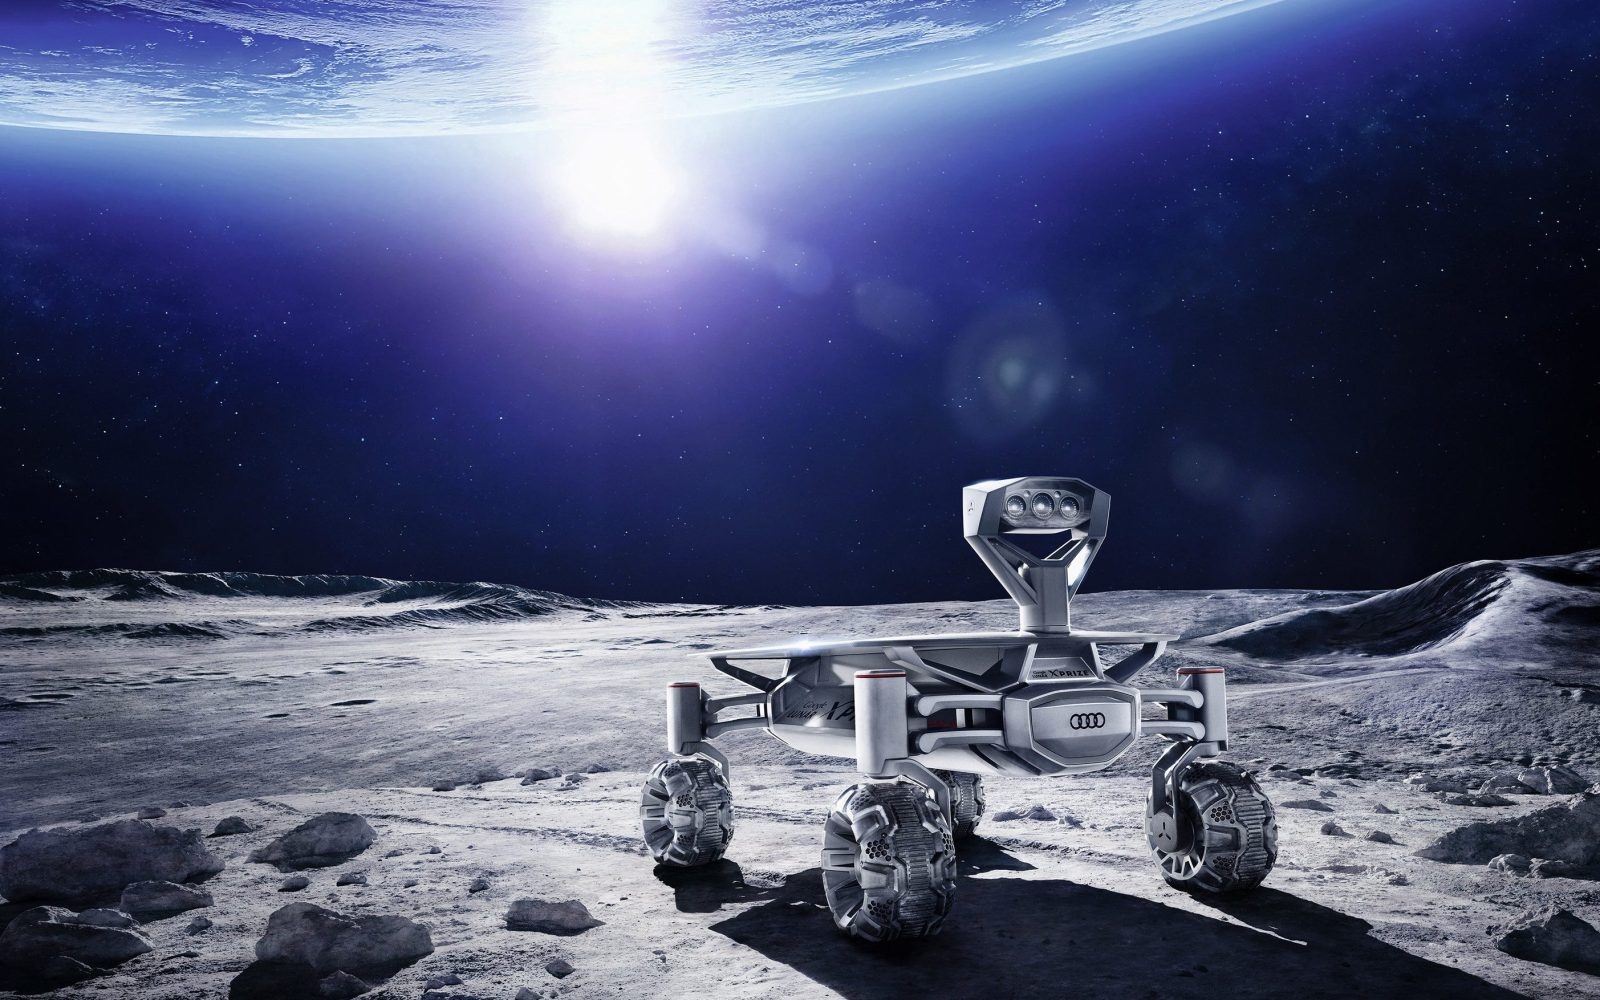 Audi's first all-electric vehicle will be shipped to the moon in a SpaceX Falcon 9 rocket